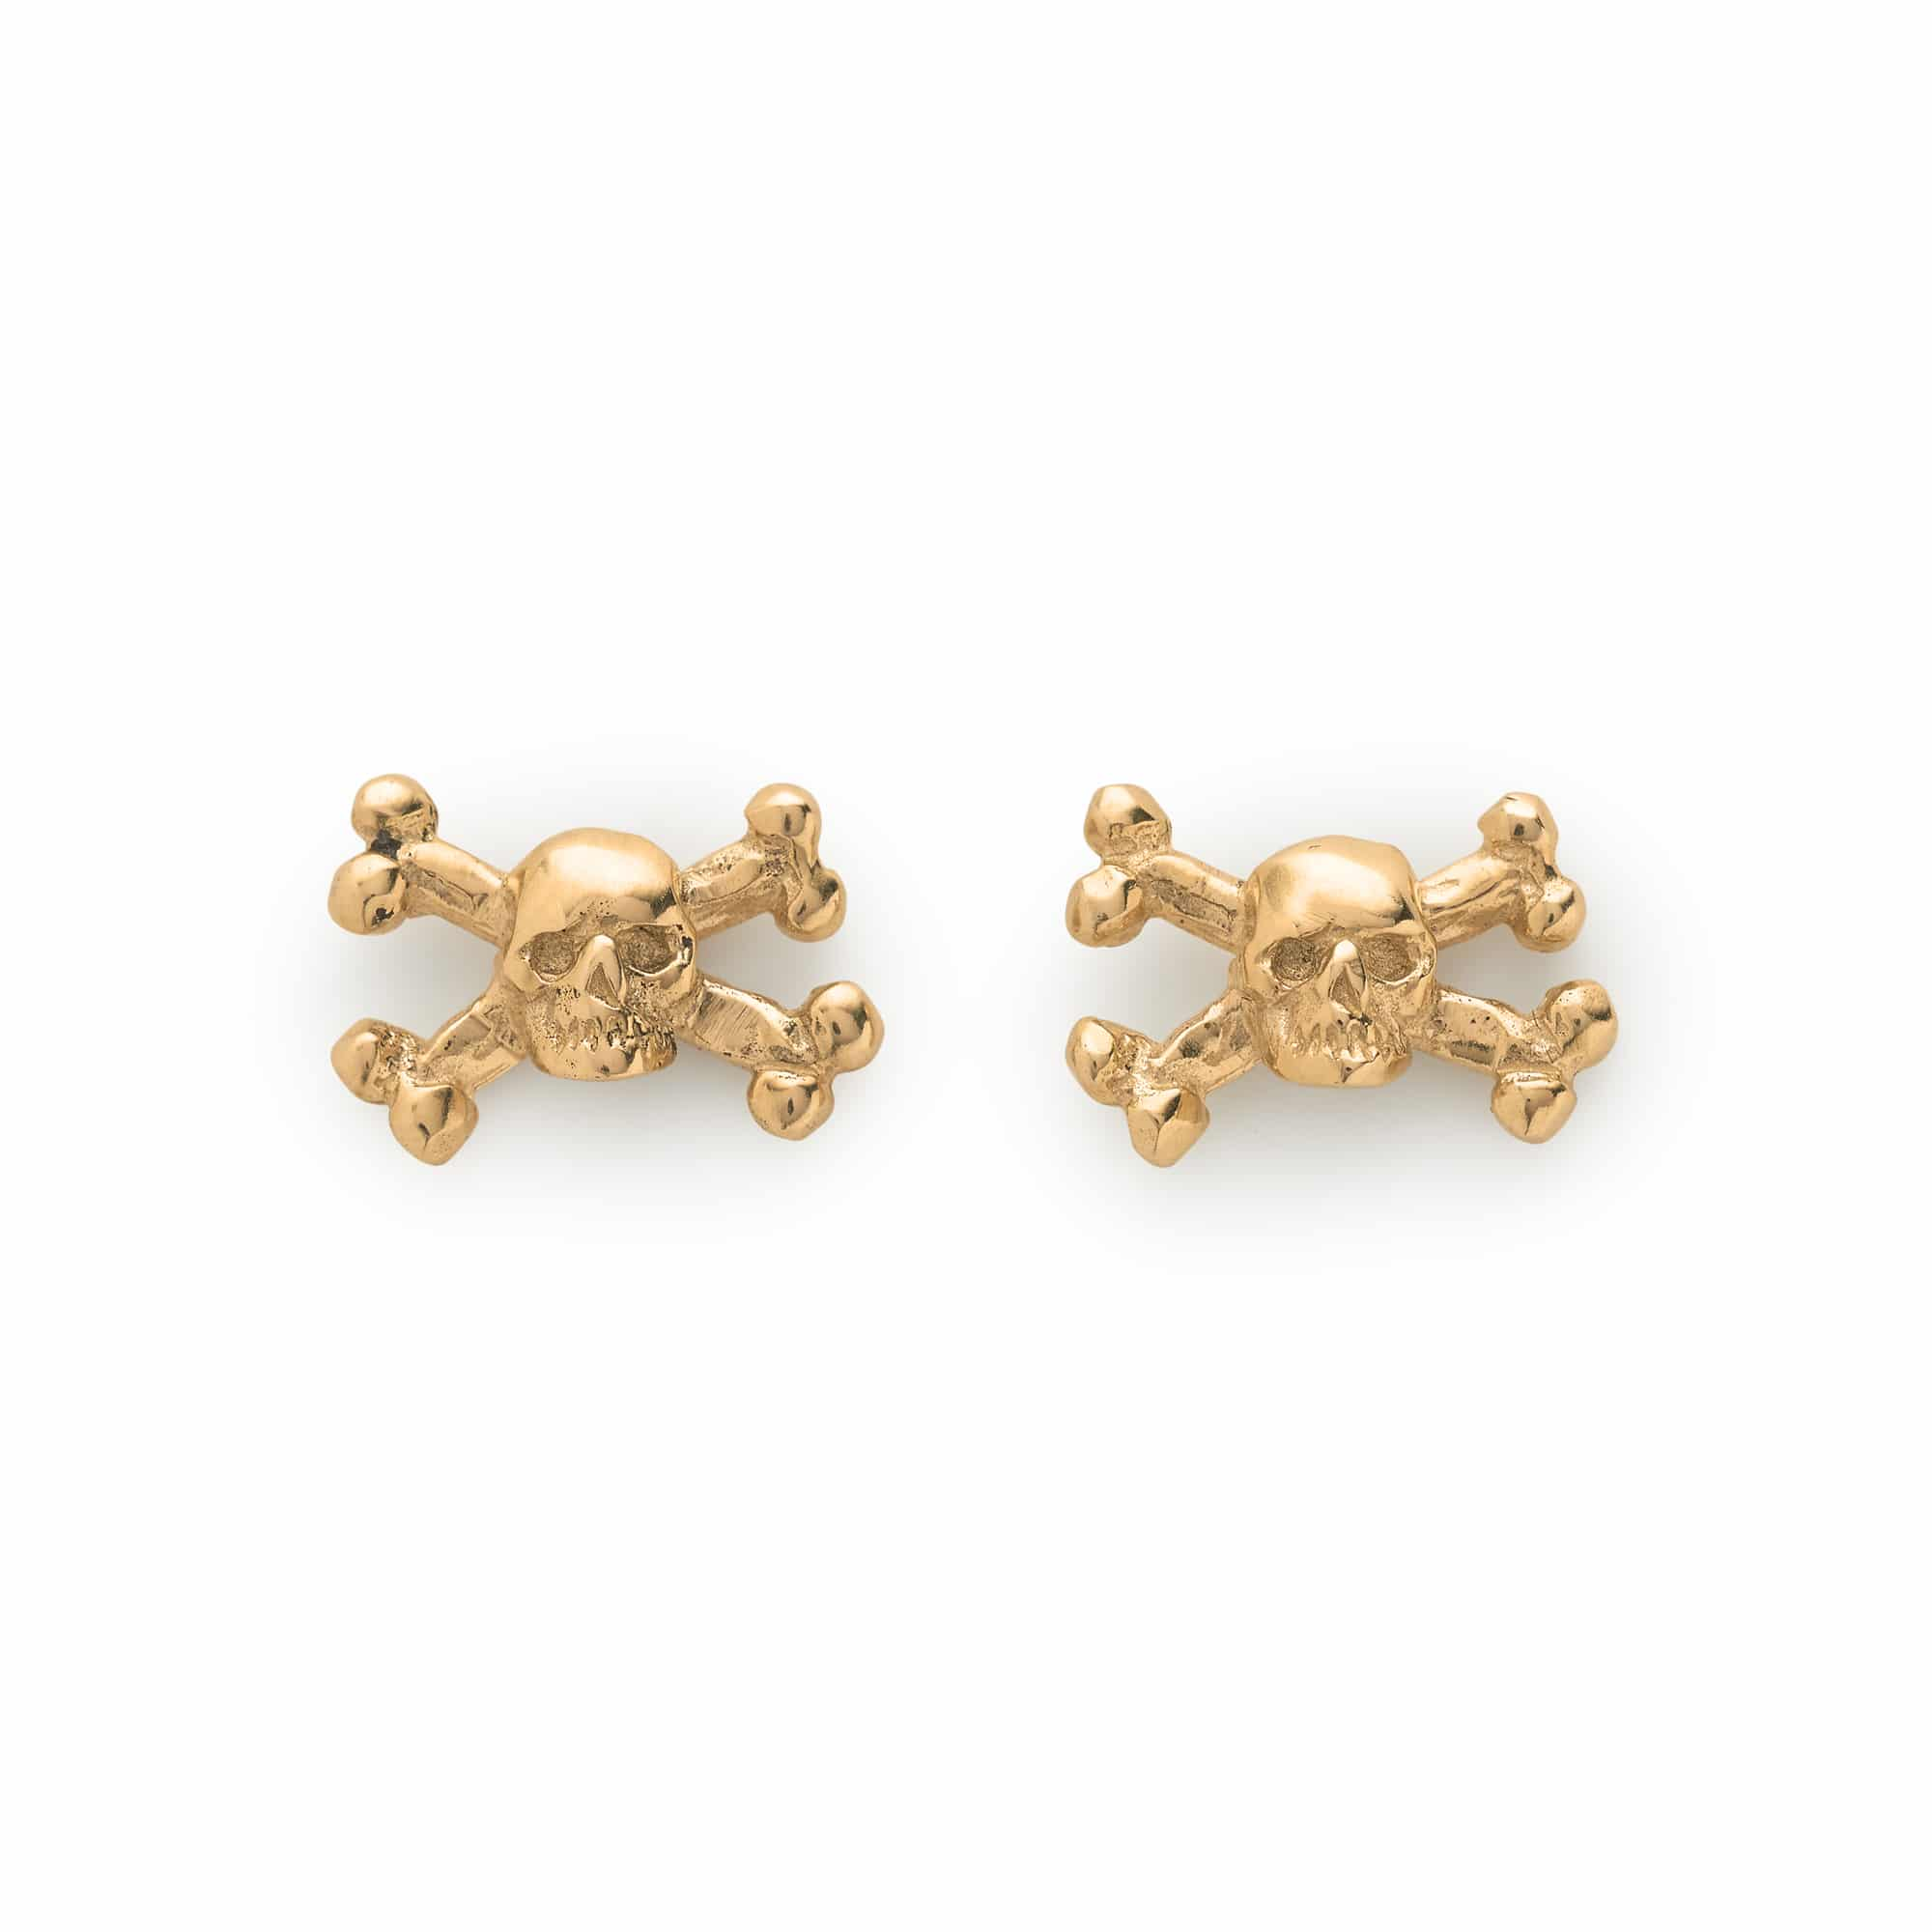 9CT Yellow Gold Skull & Crossbones Ear Studs – The Great Frog